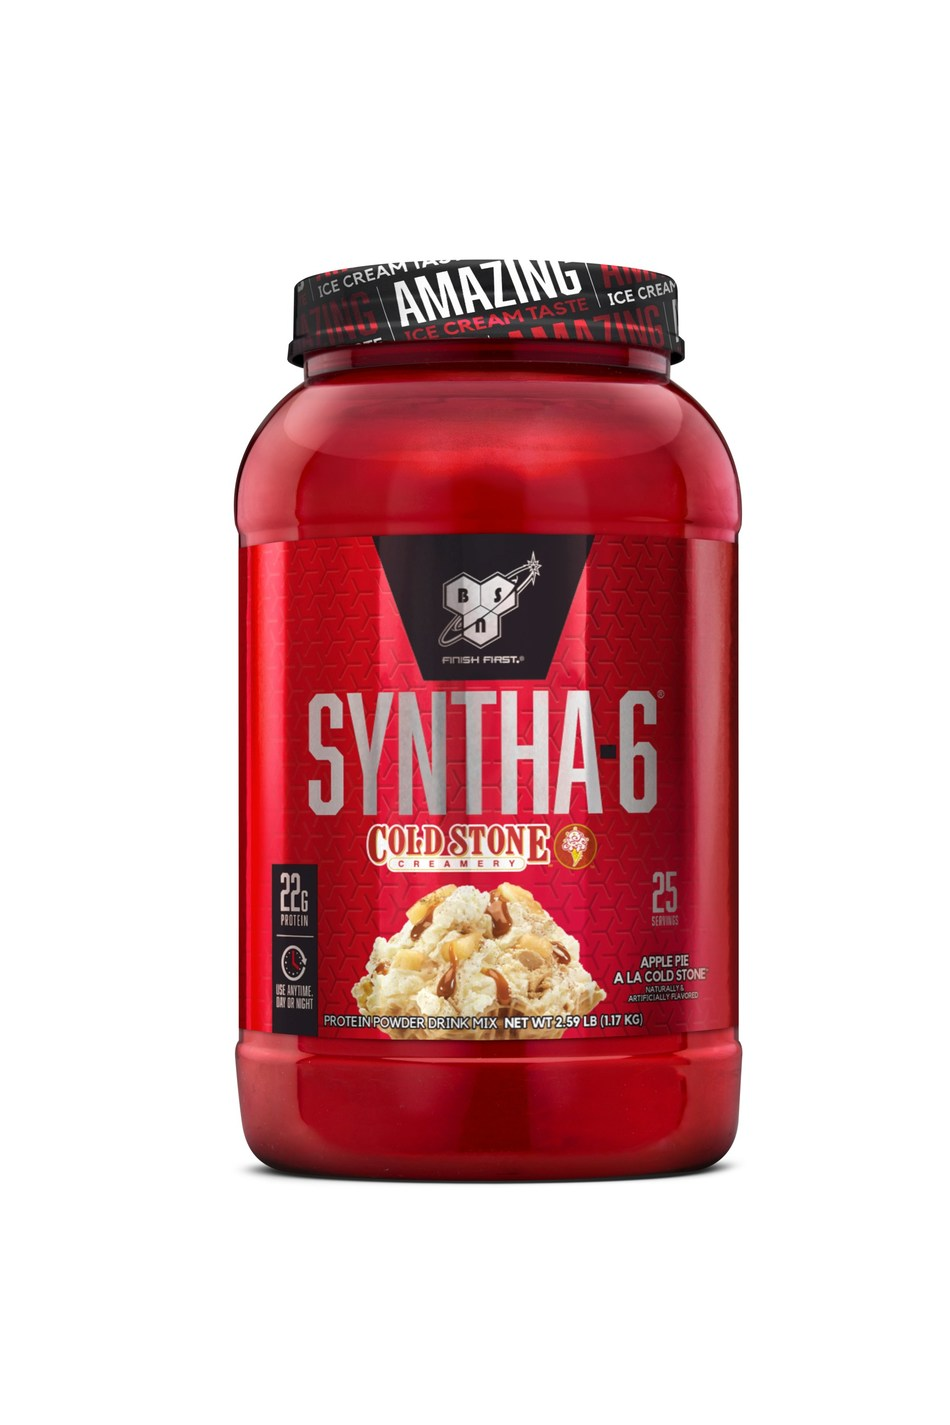 Get your holiday-inspired fitness fix with BSN SYNTHA-6 Apple Pie A La Cold Stone™, the newest addition to the popular flavor line inspired by Cold Stone Creamery® Signature Creations™.